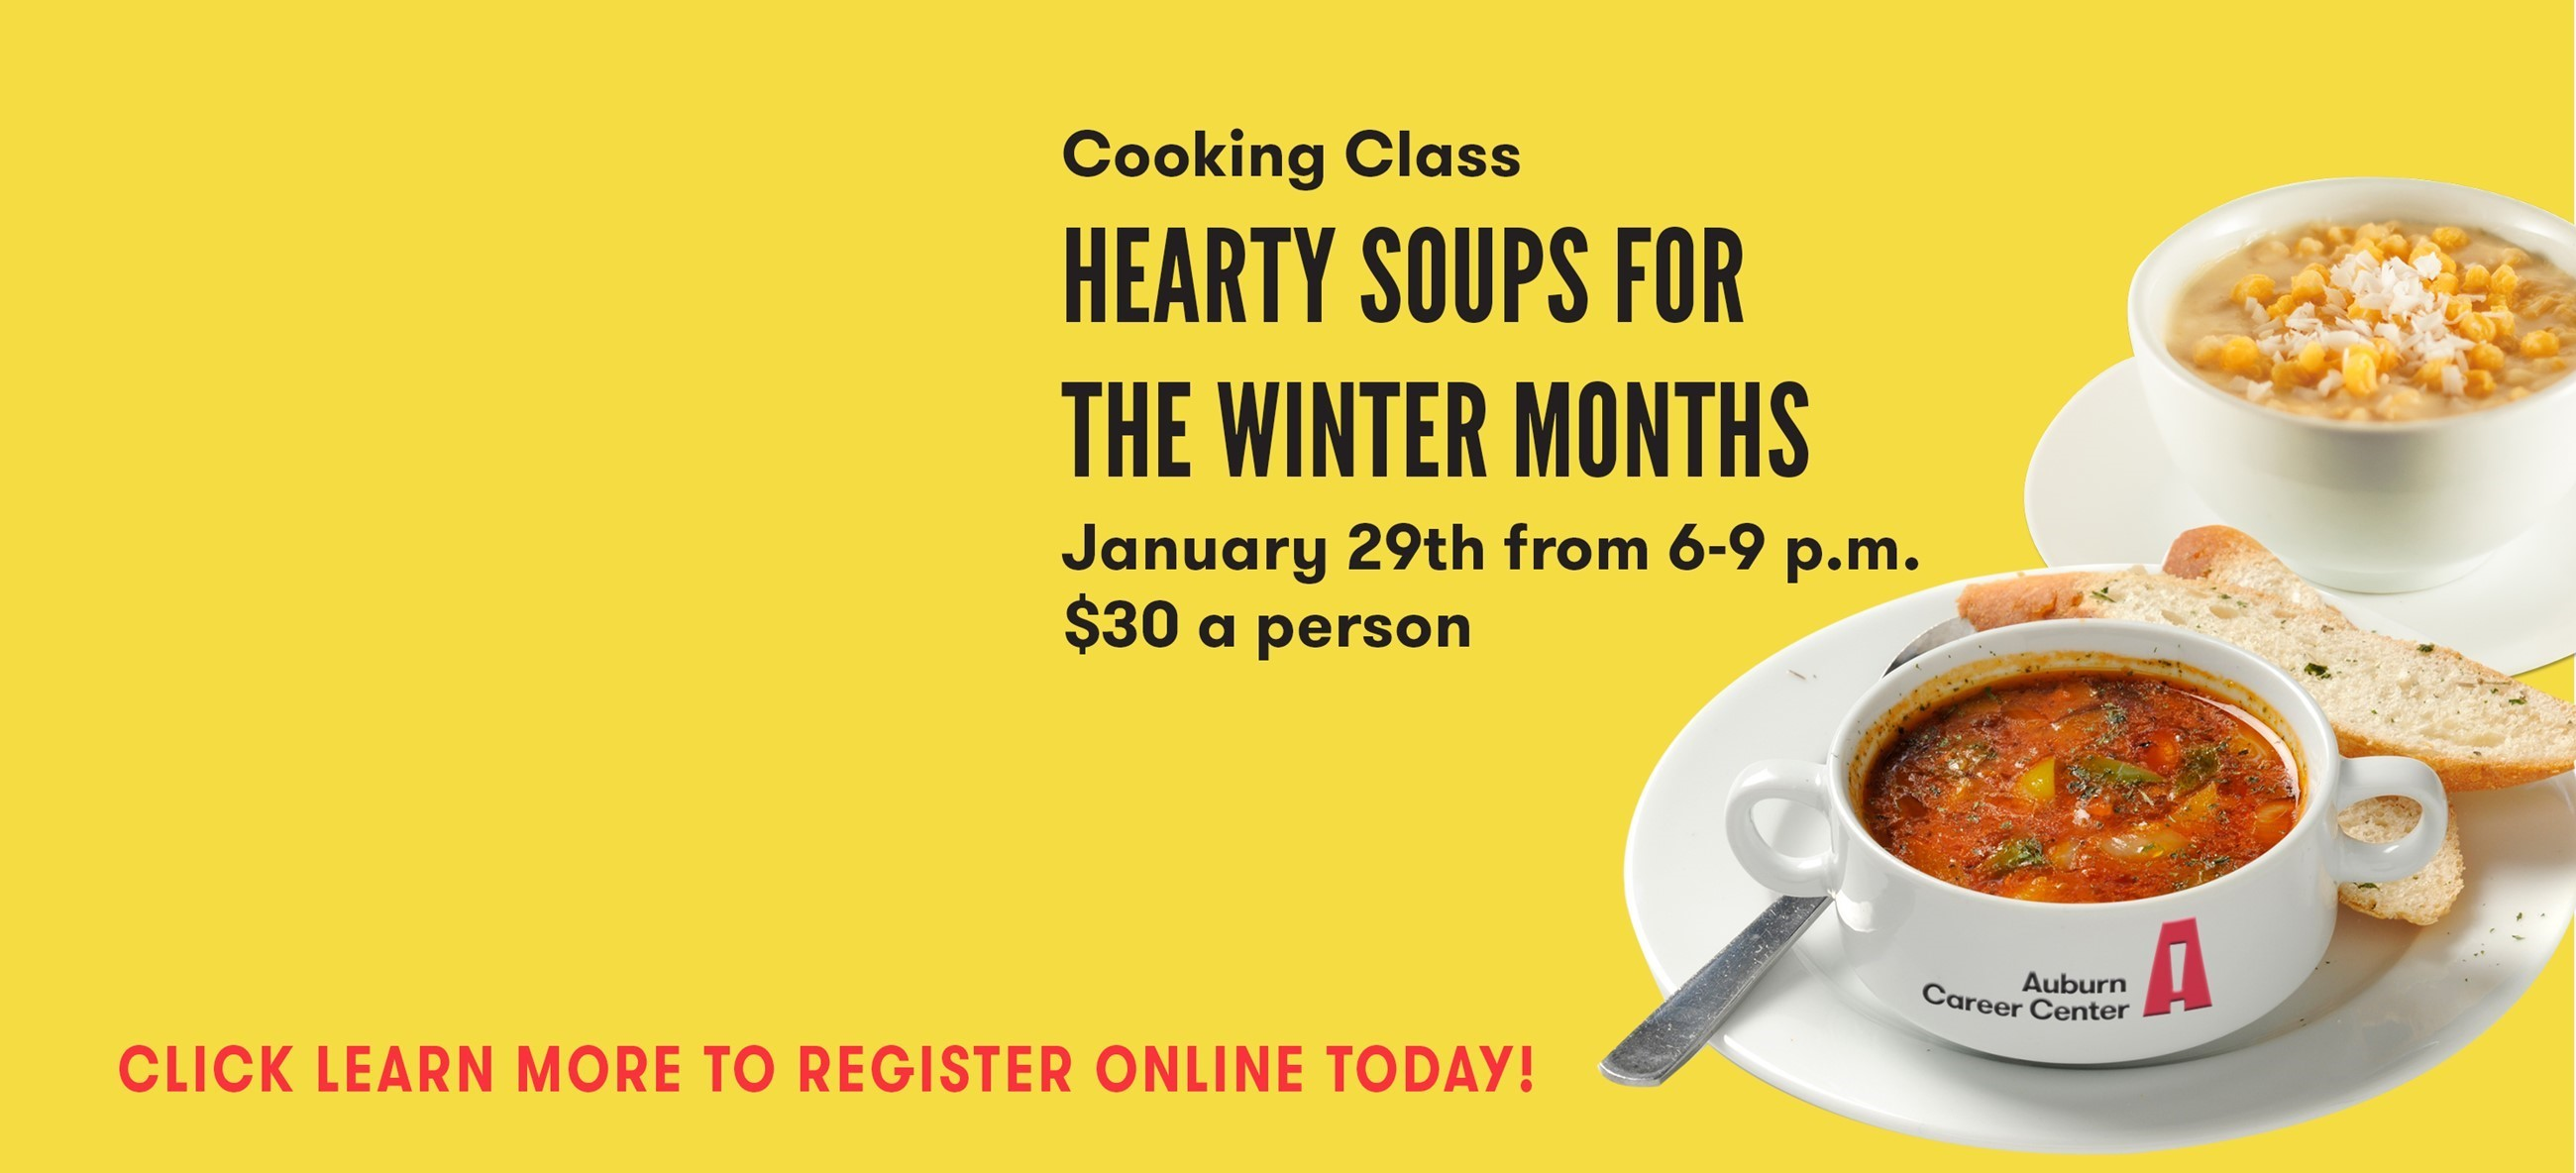 bowls of soup with information about soup class